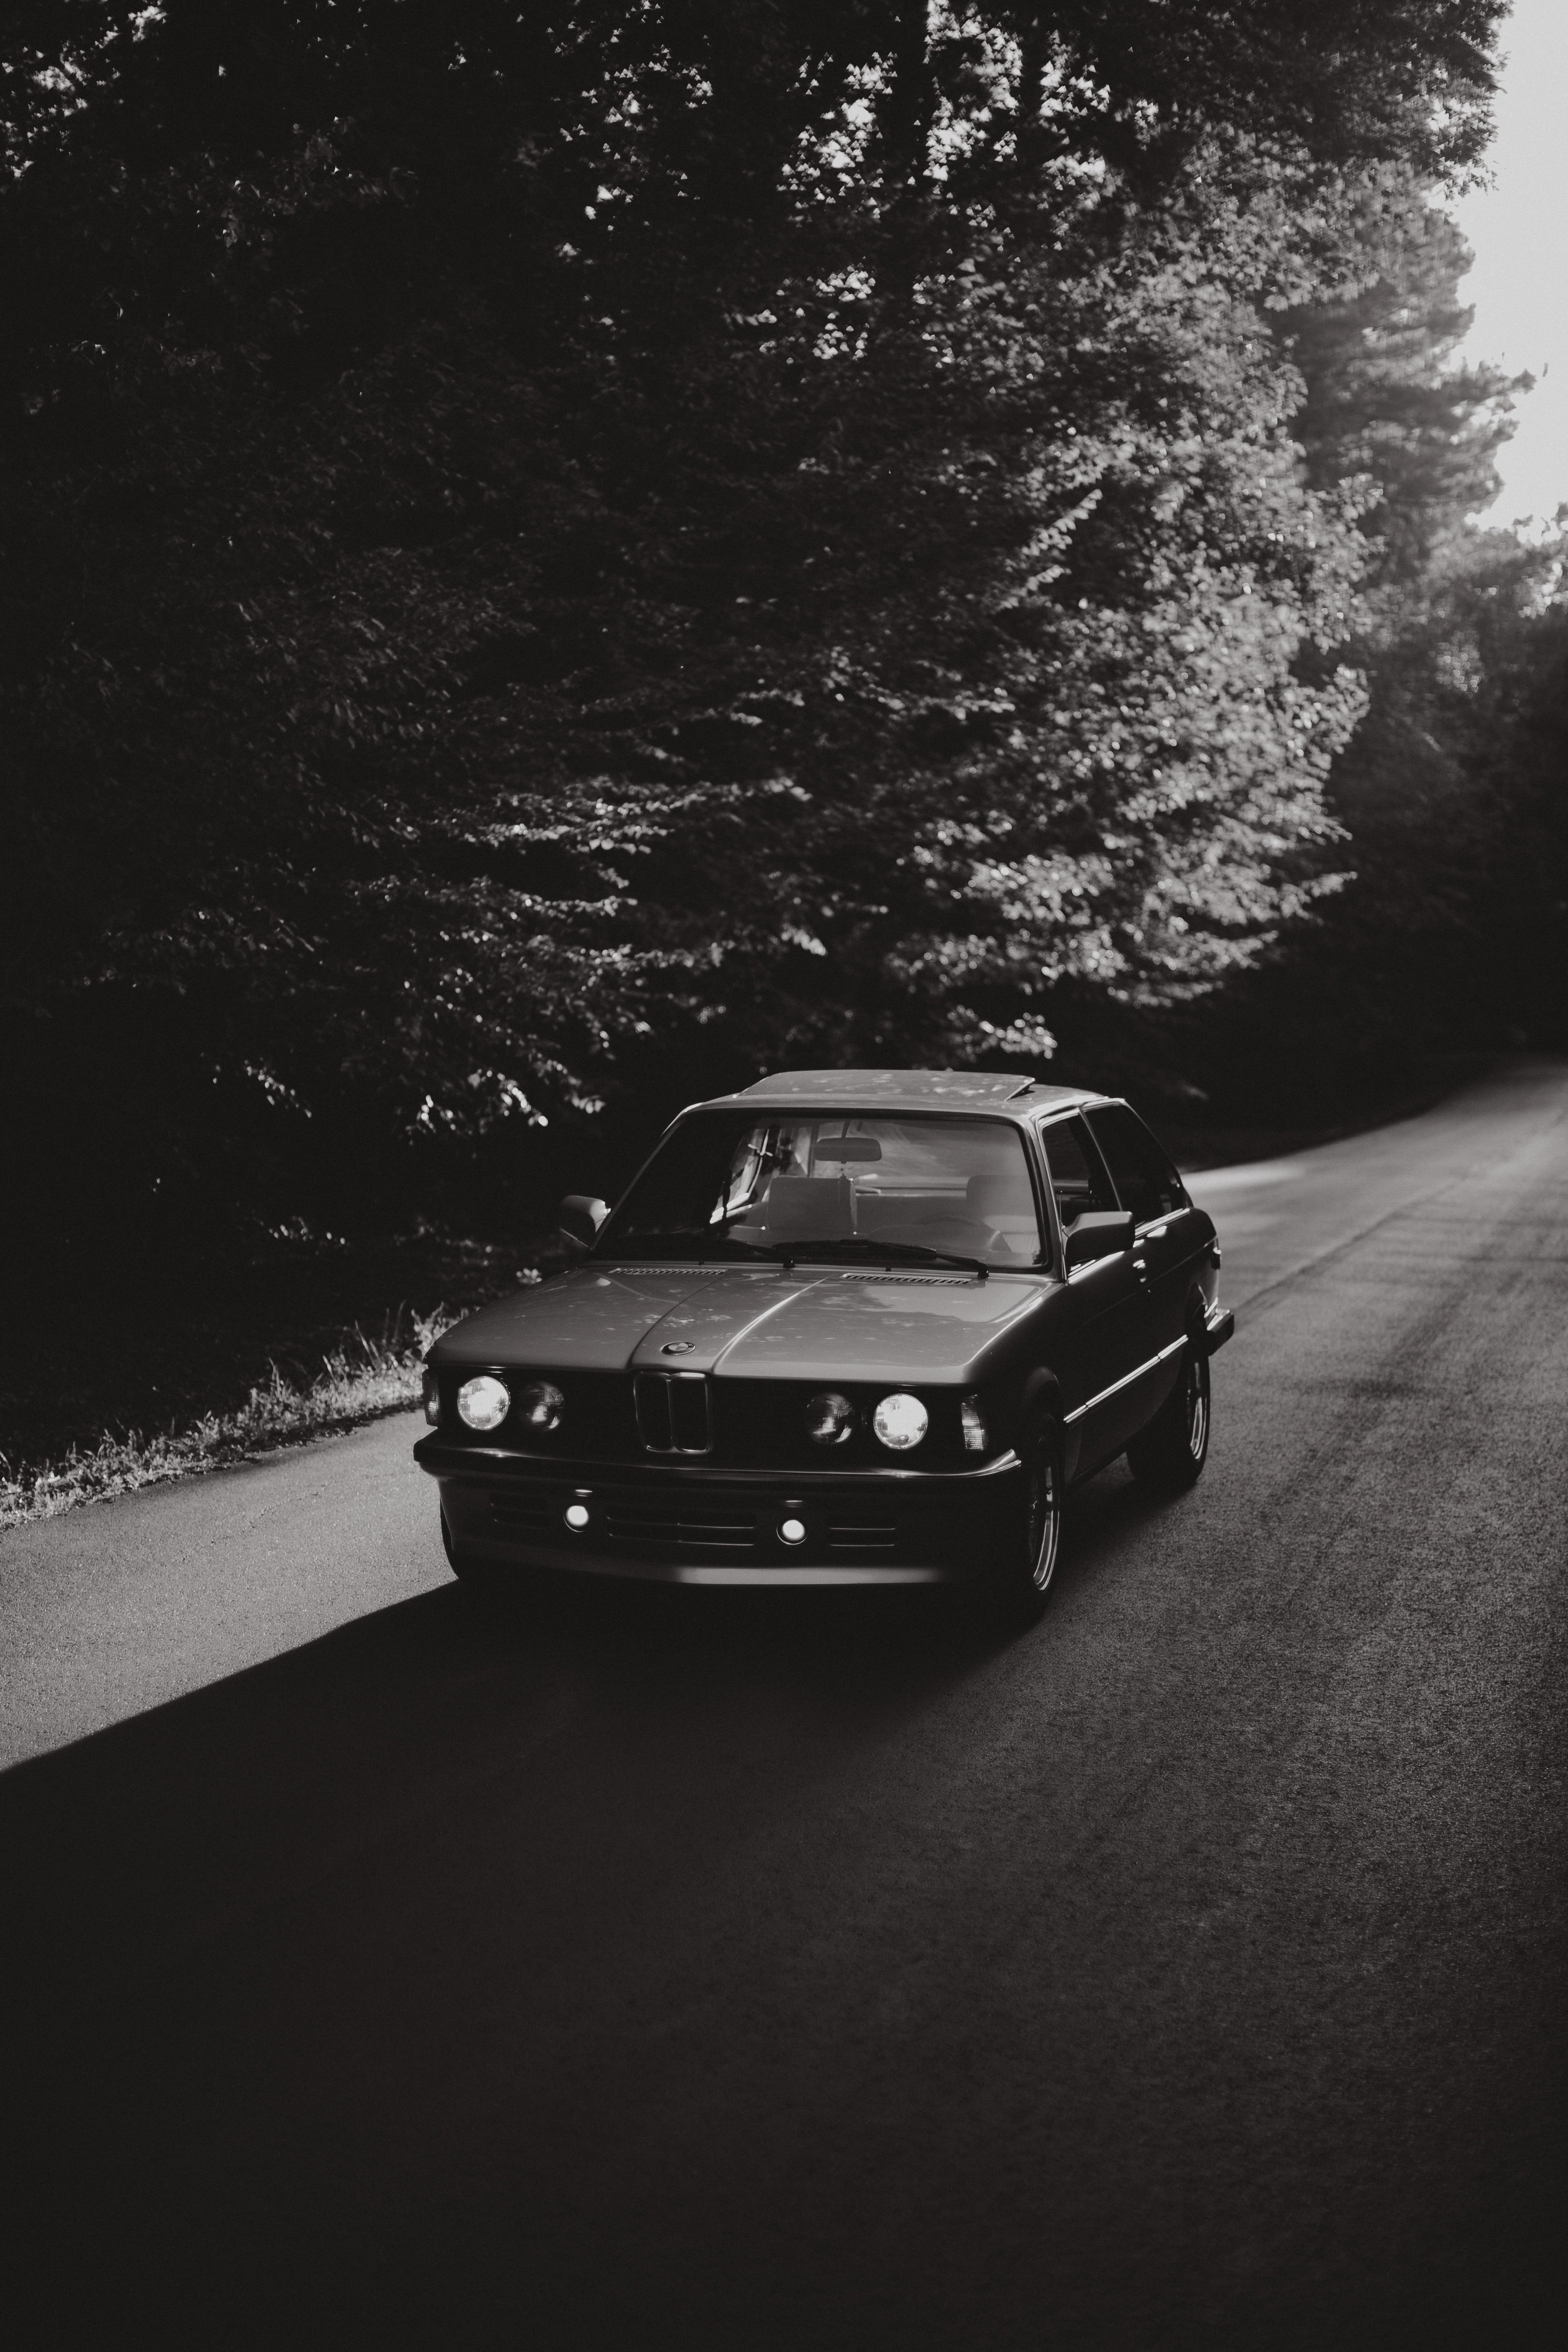 grayscale photo of BMW coupe near black trees